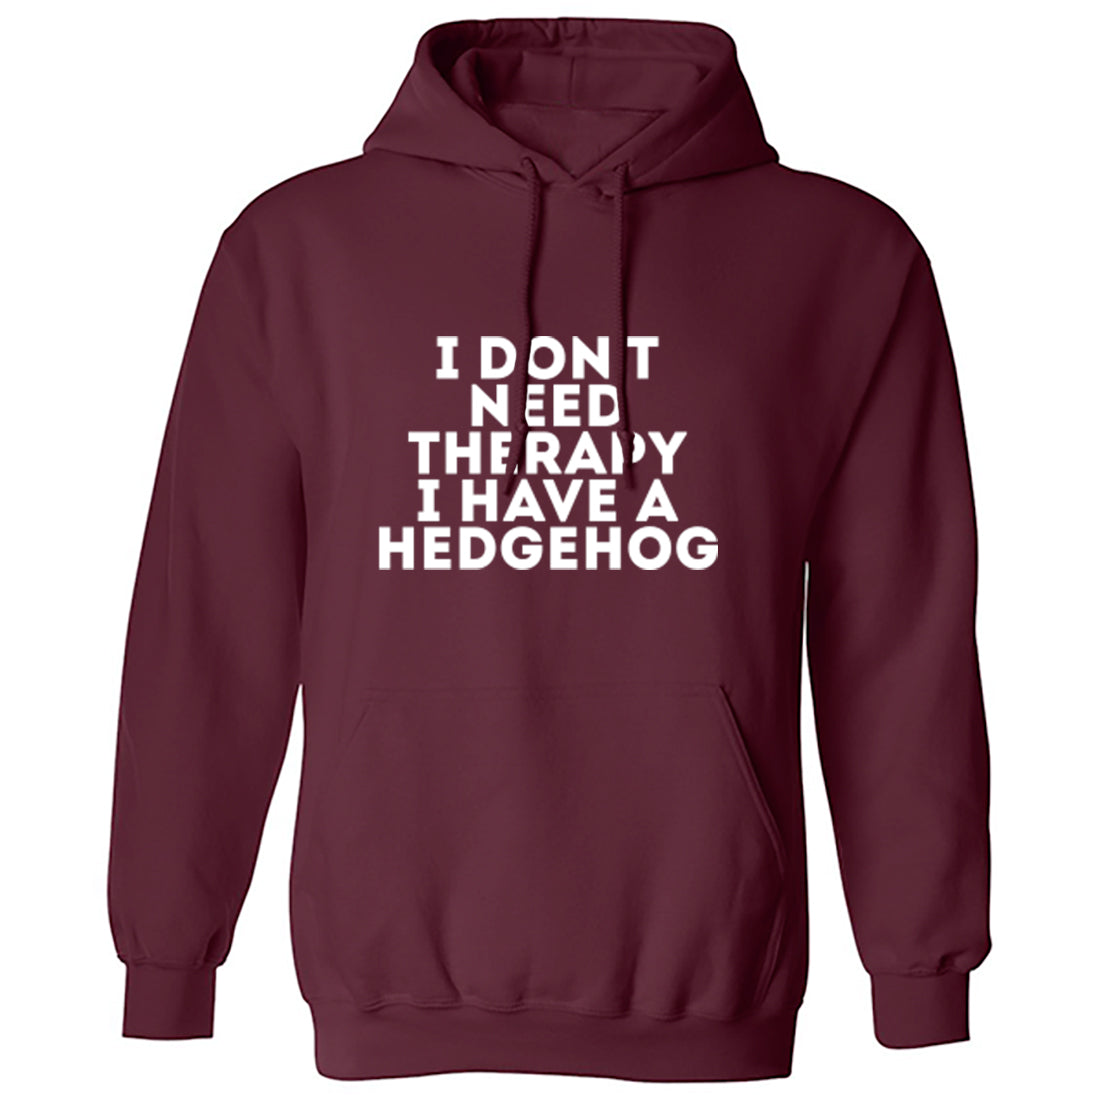 I Don't Need Therapy I Have A Hedgehog Unisex Hoodie K1611 - Illustrated Identity Ltd.